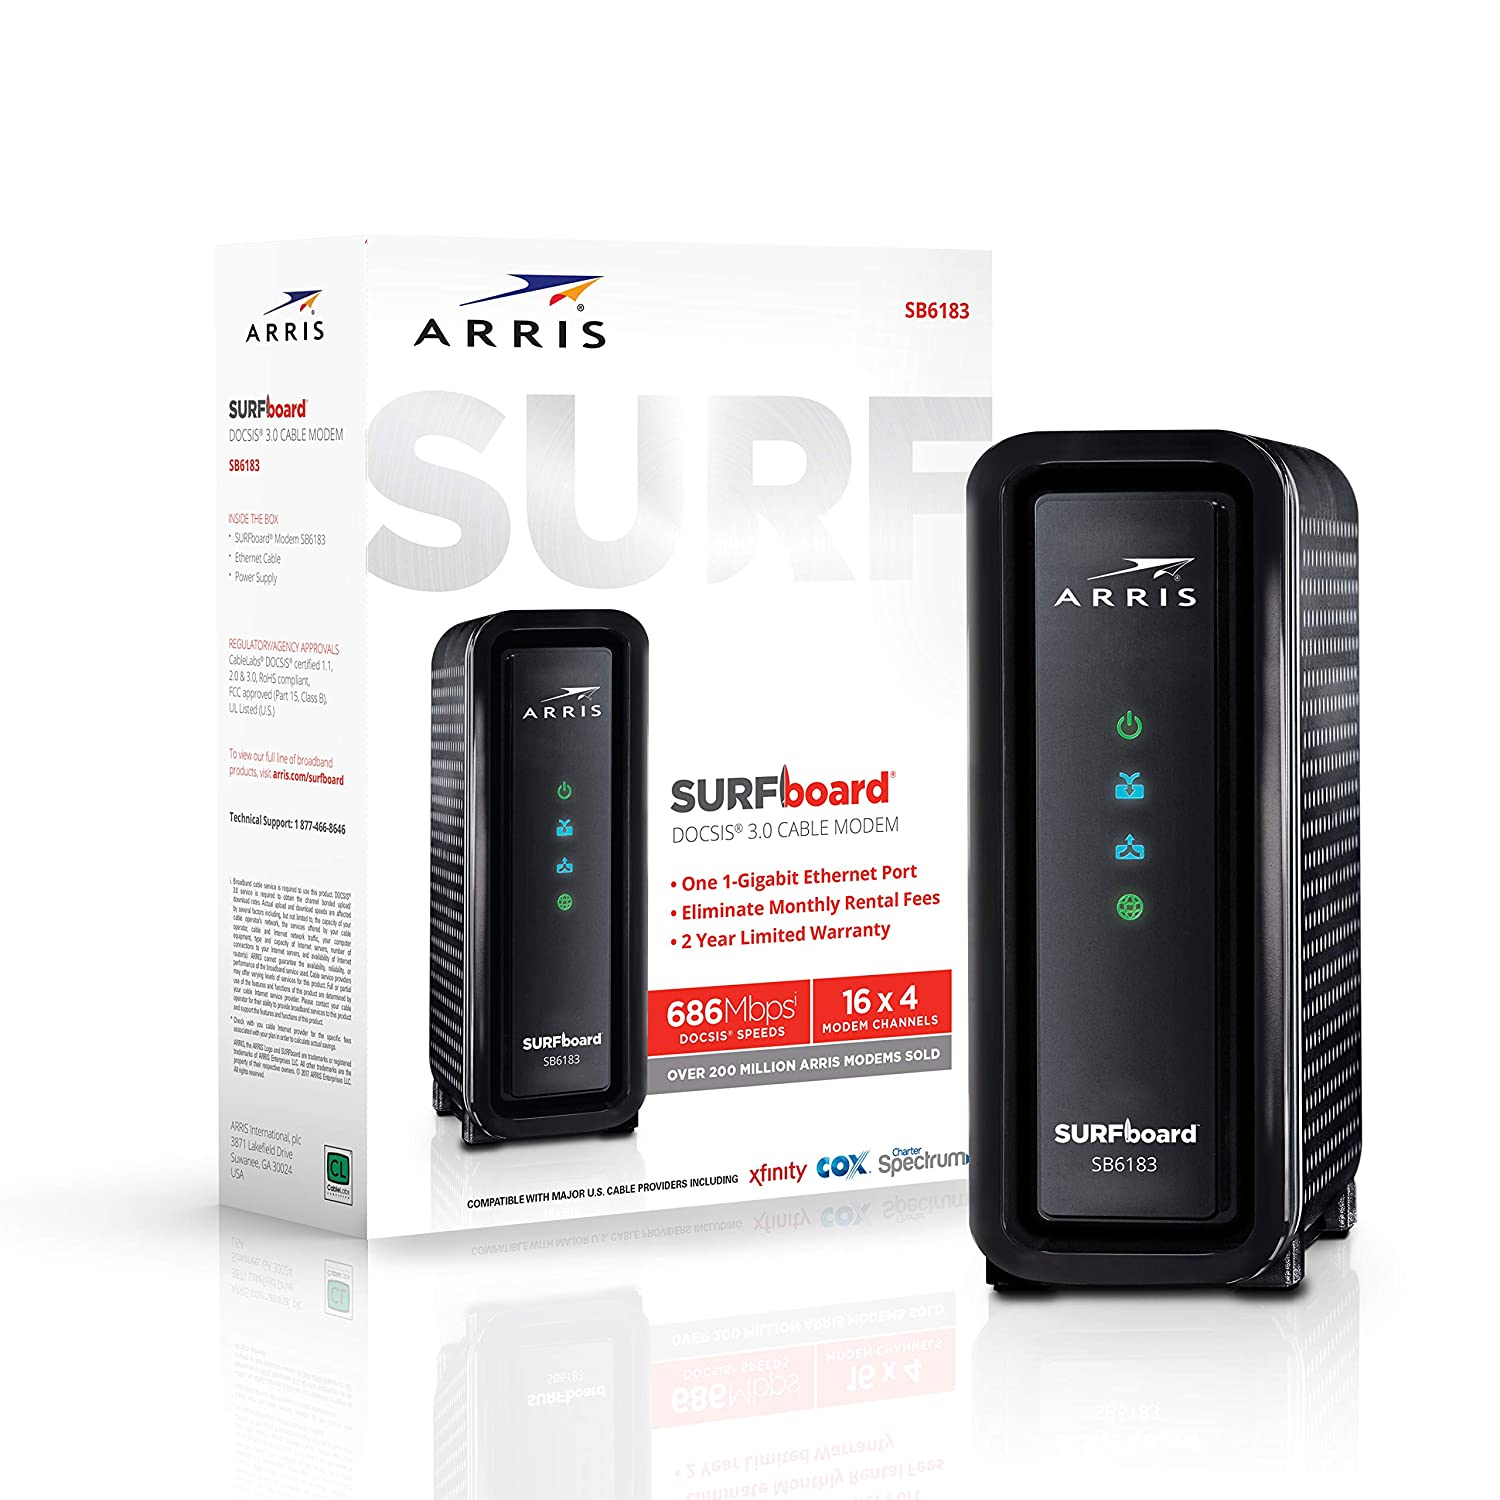 ARRIS SURFboard 16x4 SB6183 DOCSIS 3.0 Cable Modem- Retail Package- Black ARRIS Solutions Inc. SB6183 Black